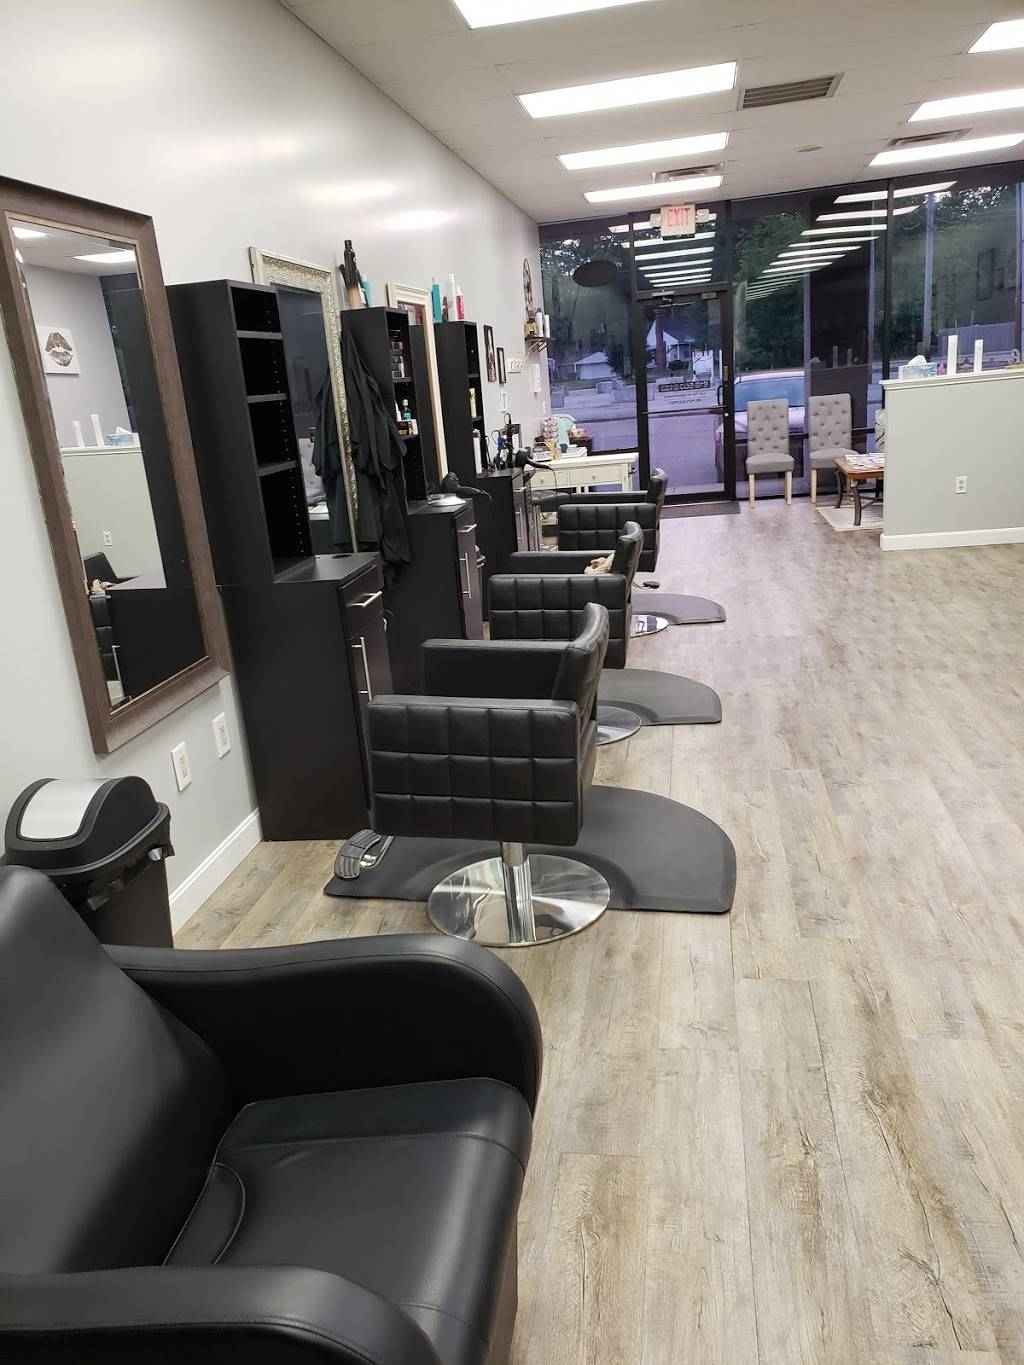 Off with your Hair Salon - hair care  | Photo 1 of 9 | Address: 2736 Charlestown Rd Suite 3, New Albany, IN 47150, USA | Phone: (812) 725-7885